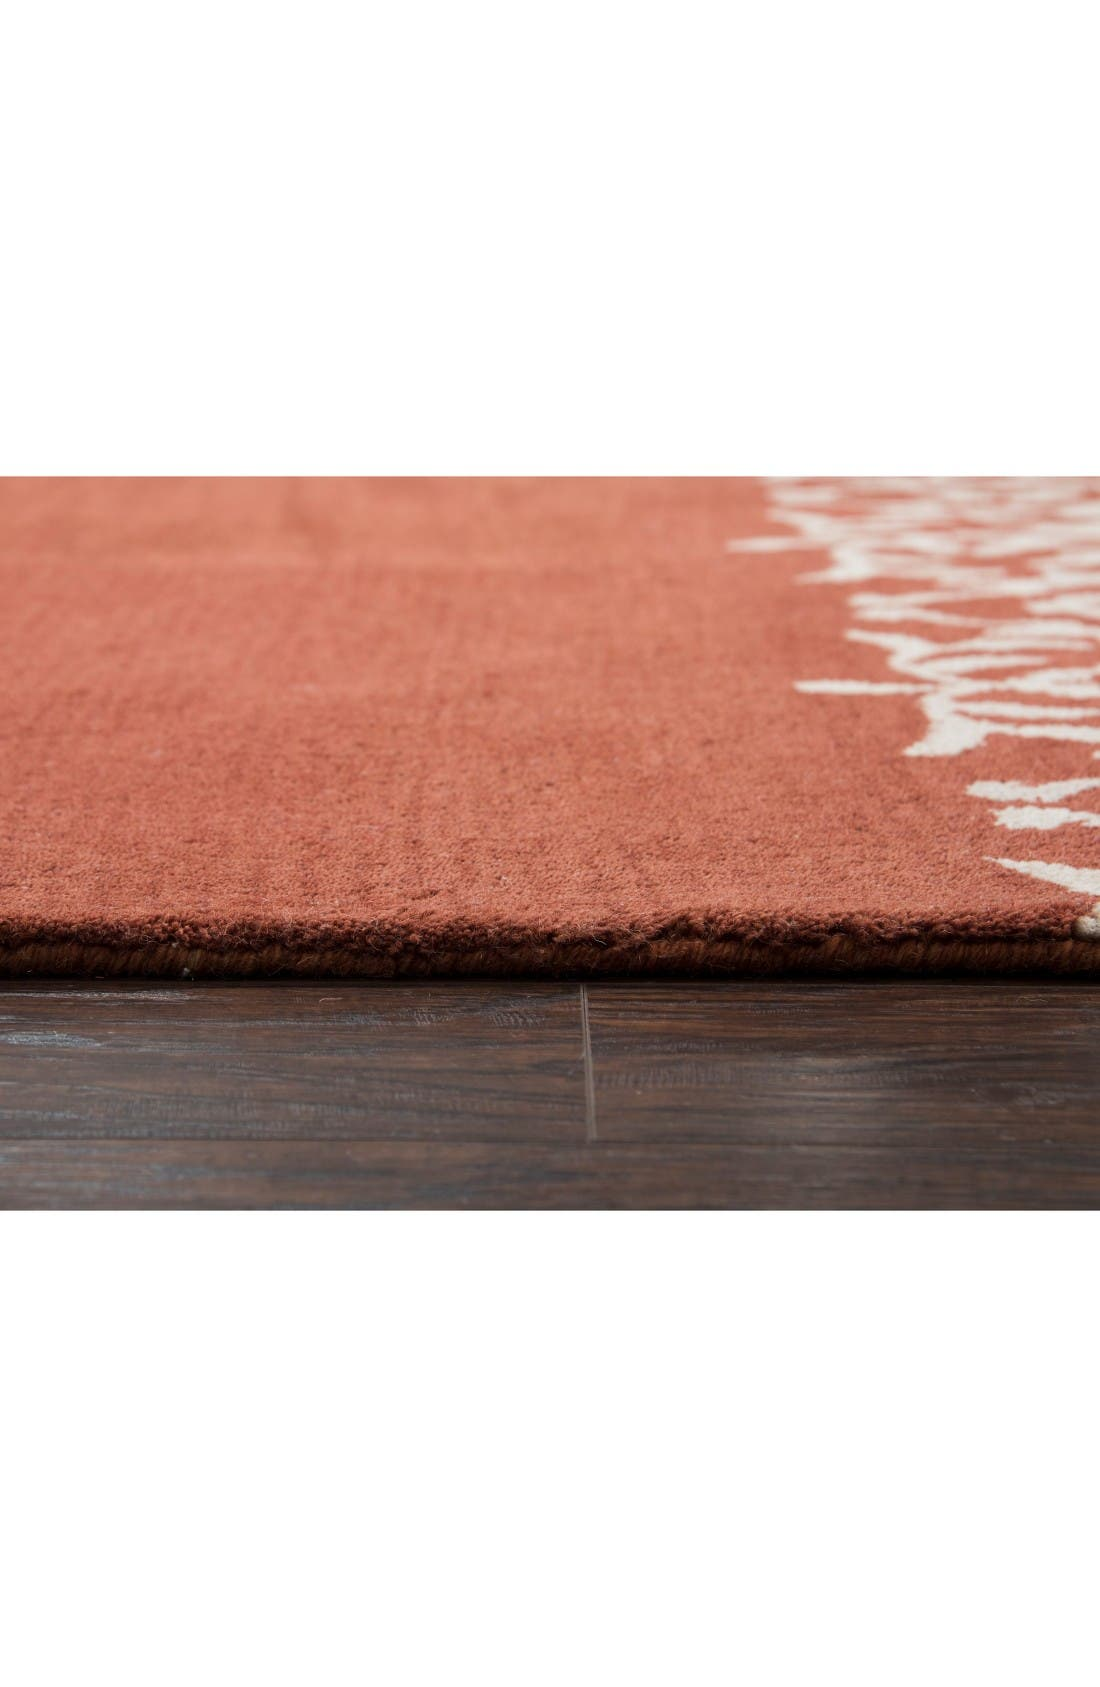 Framed Medallion Hand Tufted Wool Area Rug,                             Alternate thumbnail 3, color,                             Rust